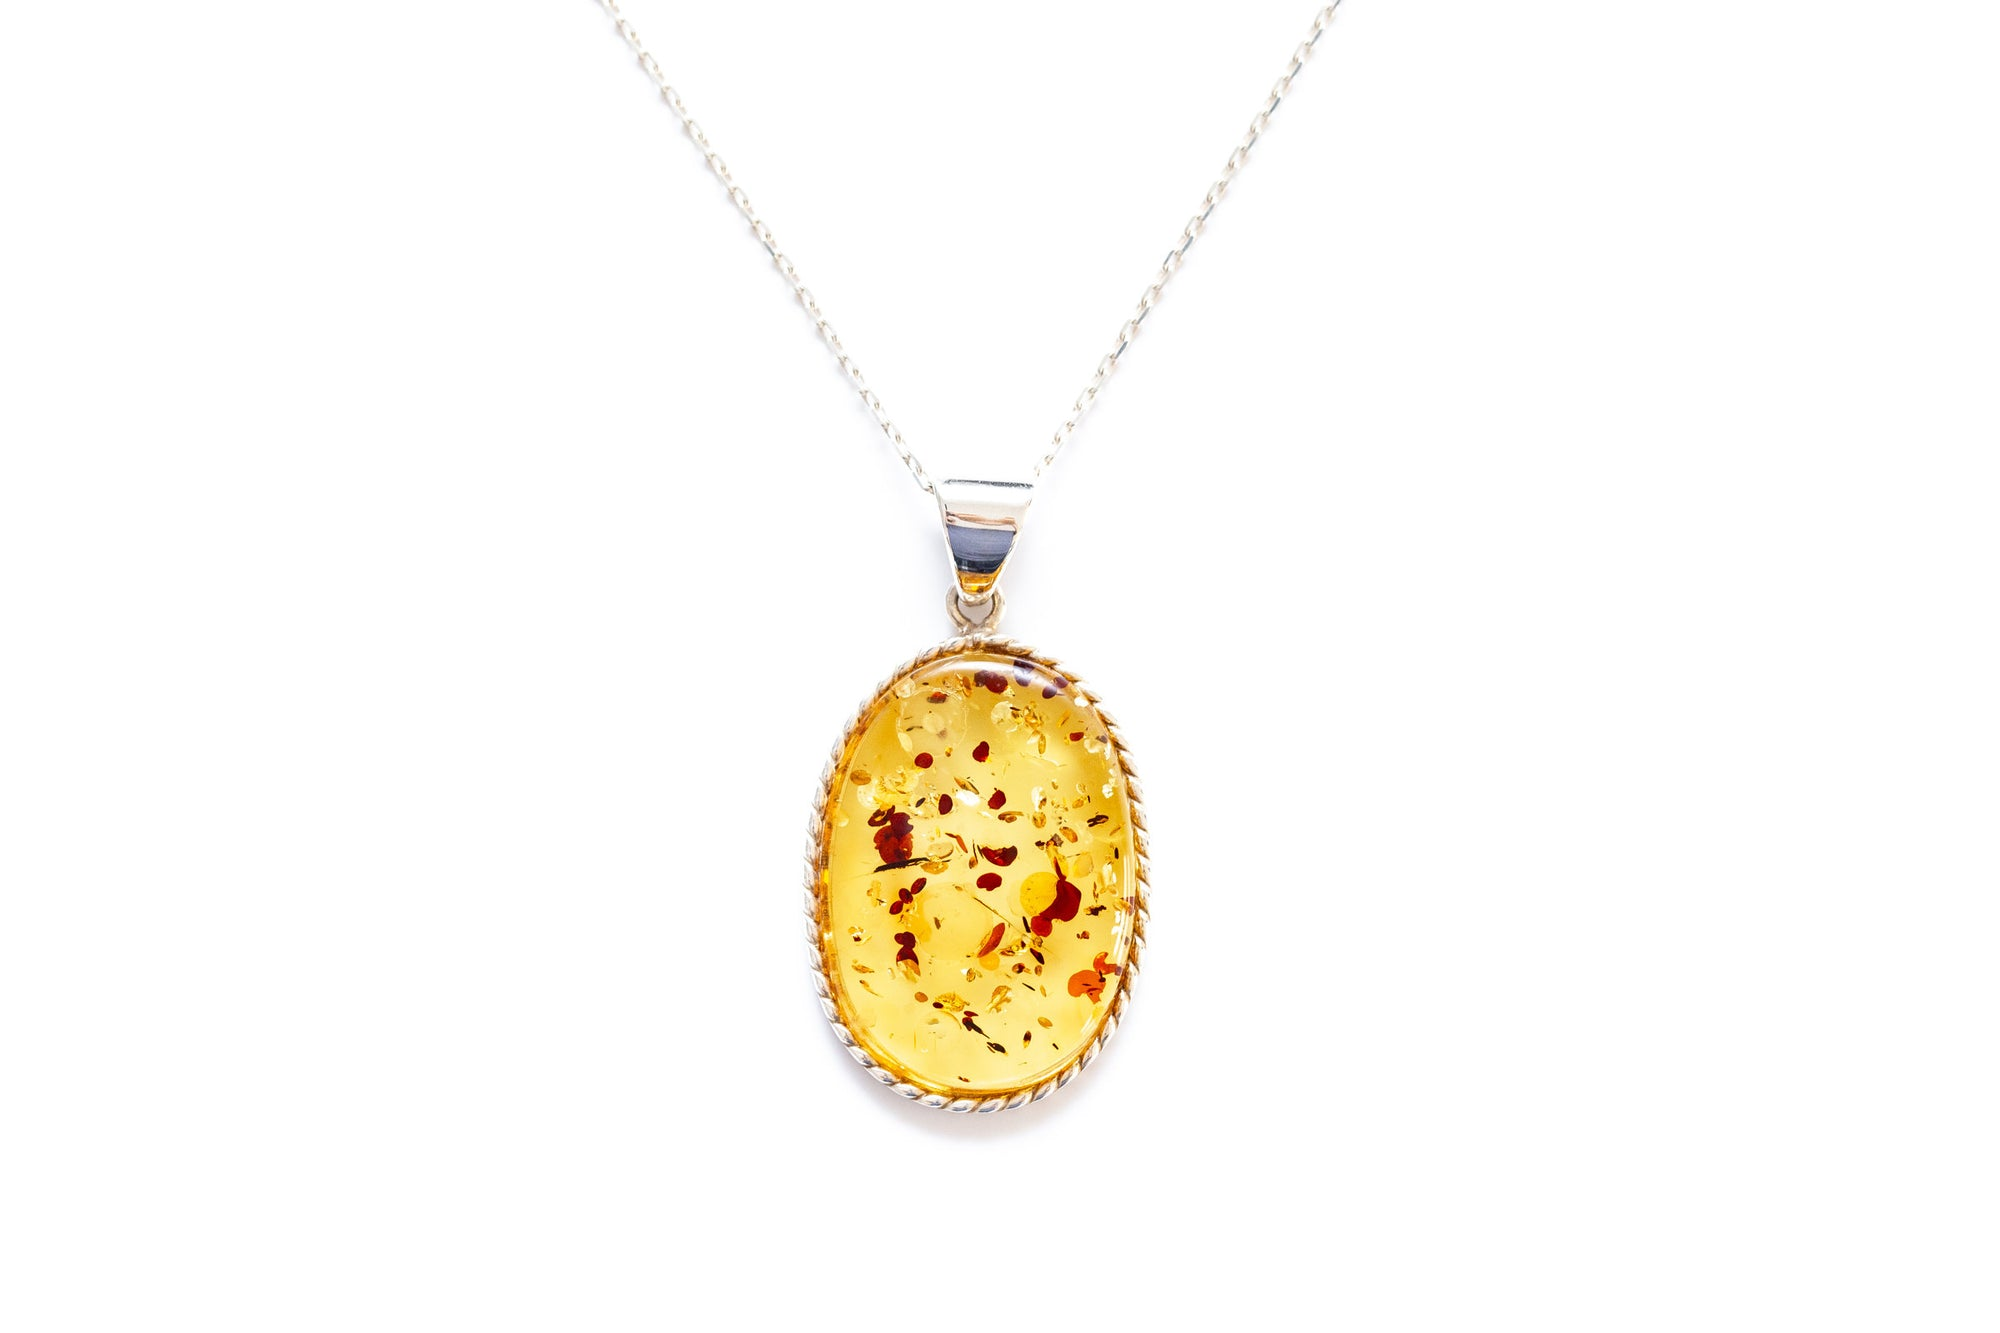 Handmade Speckled Honey Amber Braid Pendant